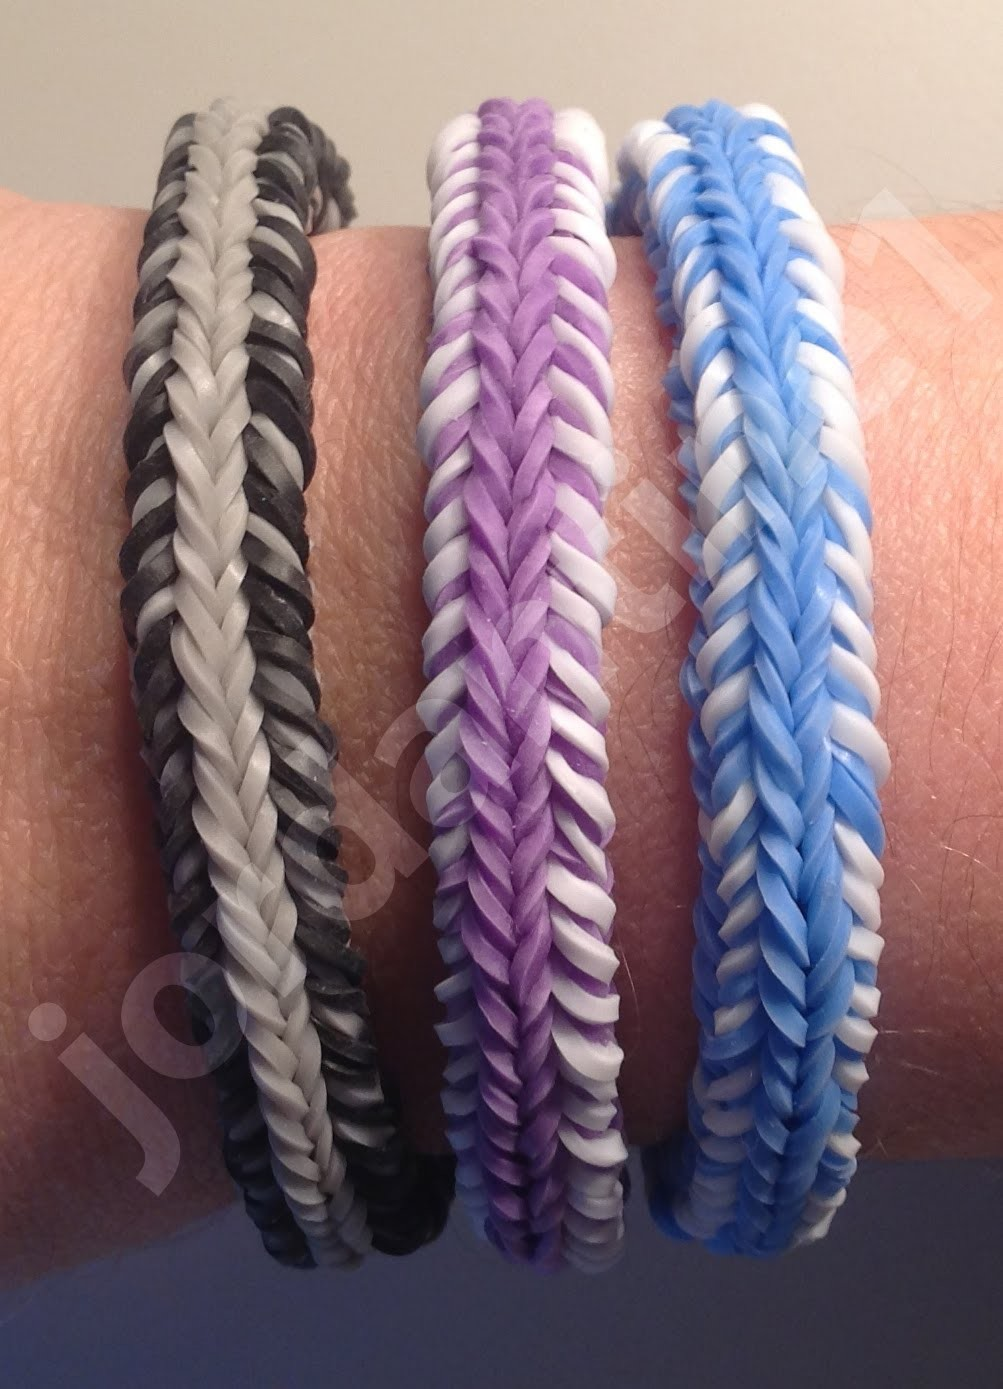 New Rainbow Loom Mini Fishtail Crossover Mash-up Bracelet - Reversible - Finger Loom